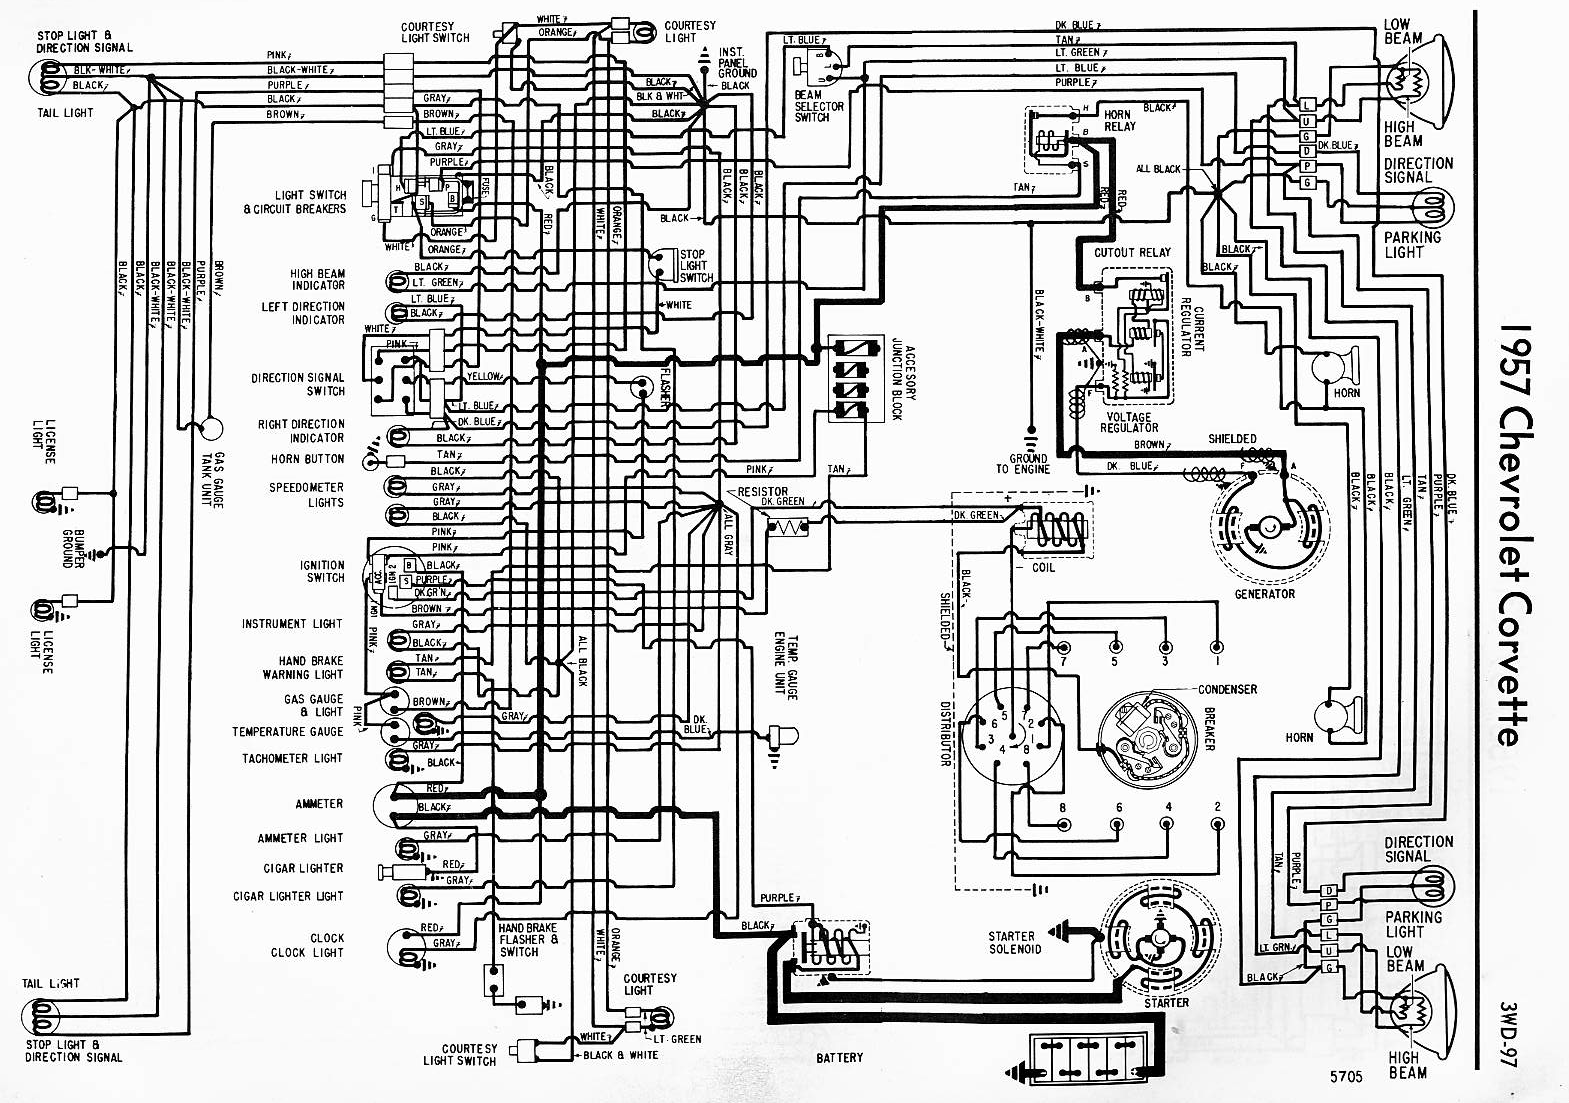 57 corvettte tracer schematic best one 1957 corvette wiring diagram willcox corvette, inc 1960 corvette wiring diagram at fashall.co